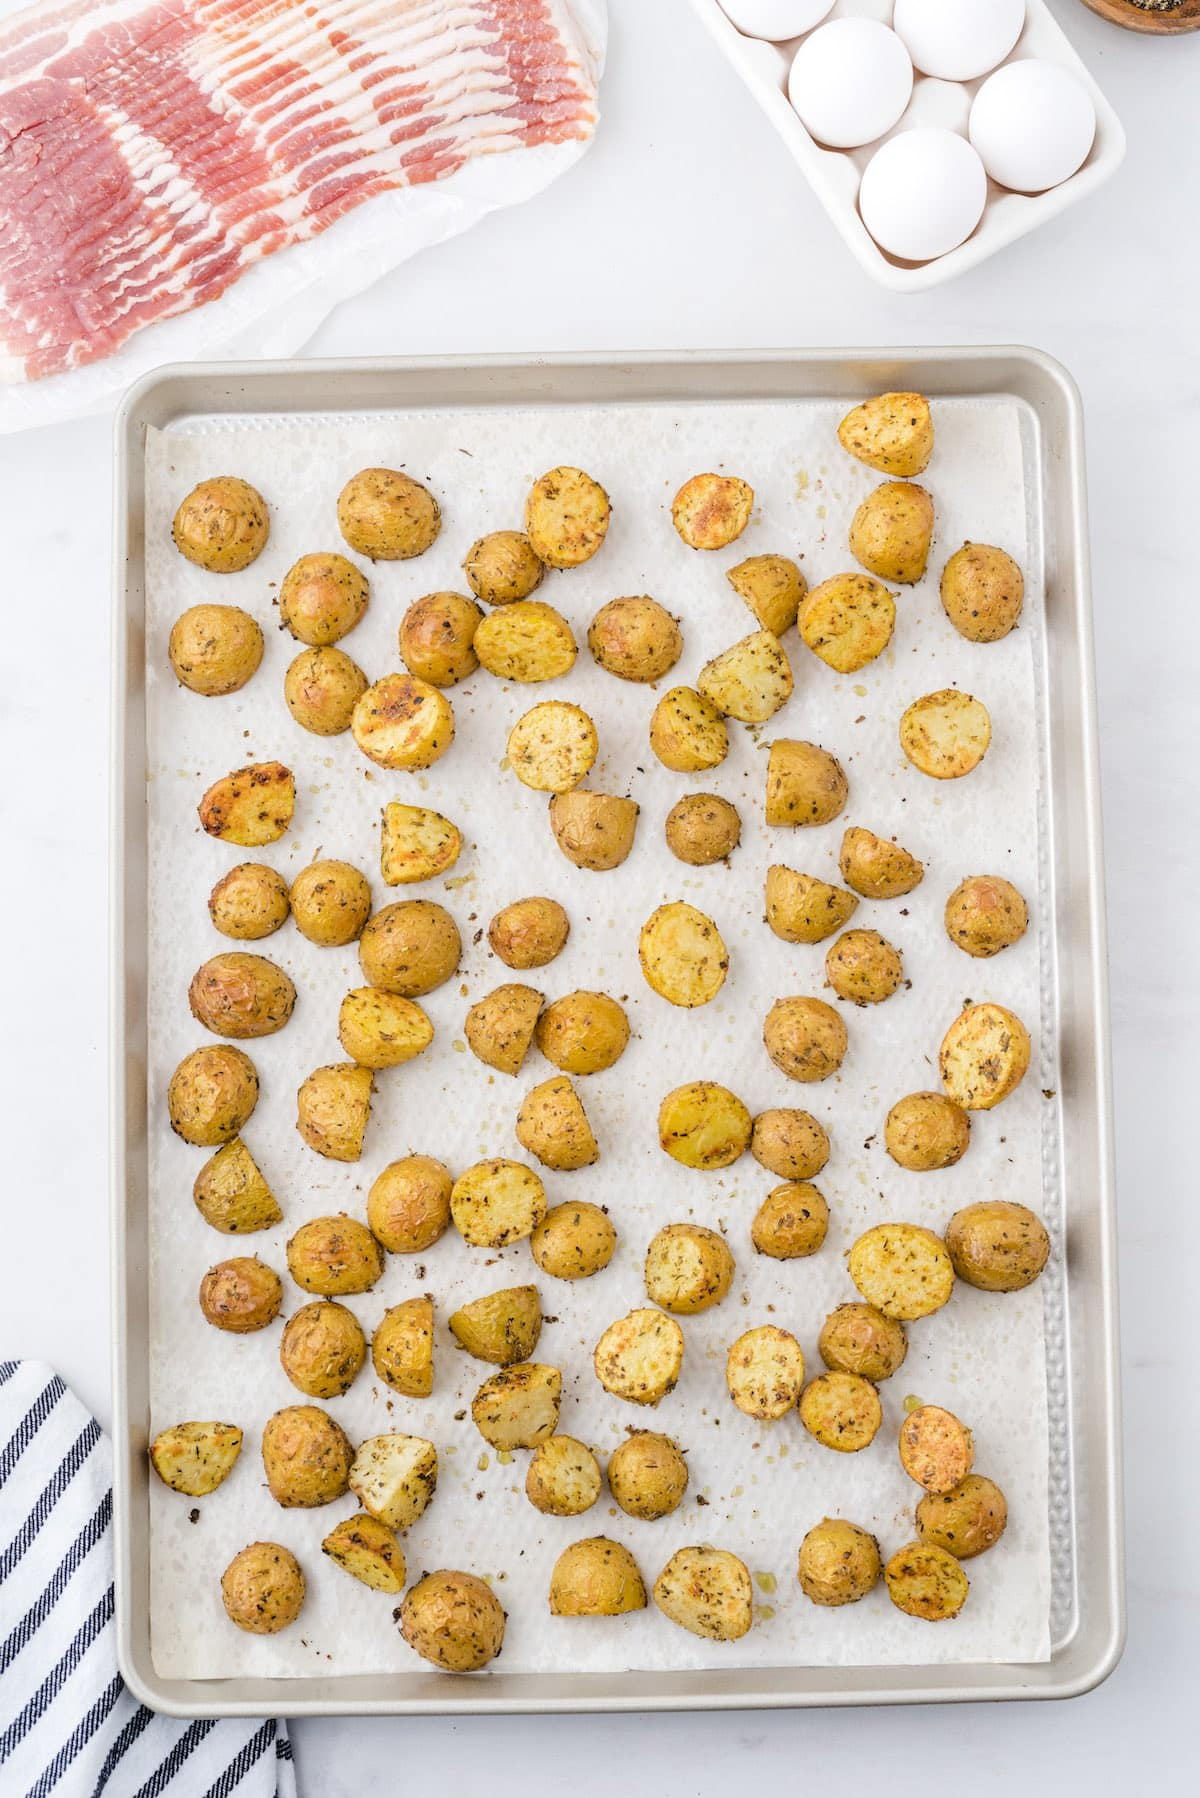 Spread the potatoes in the baking dish